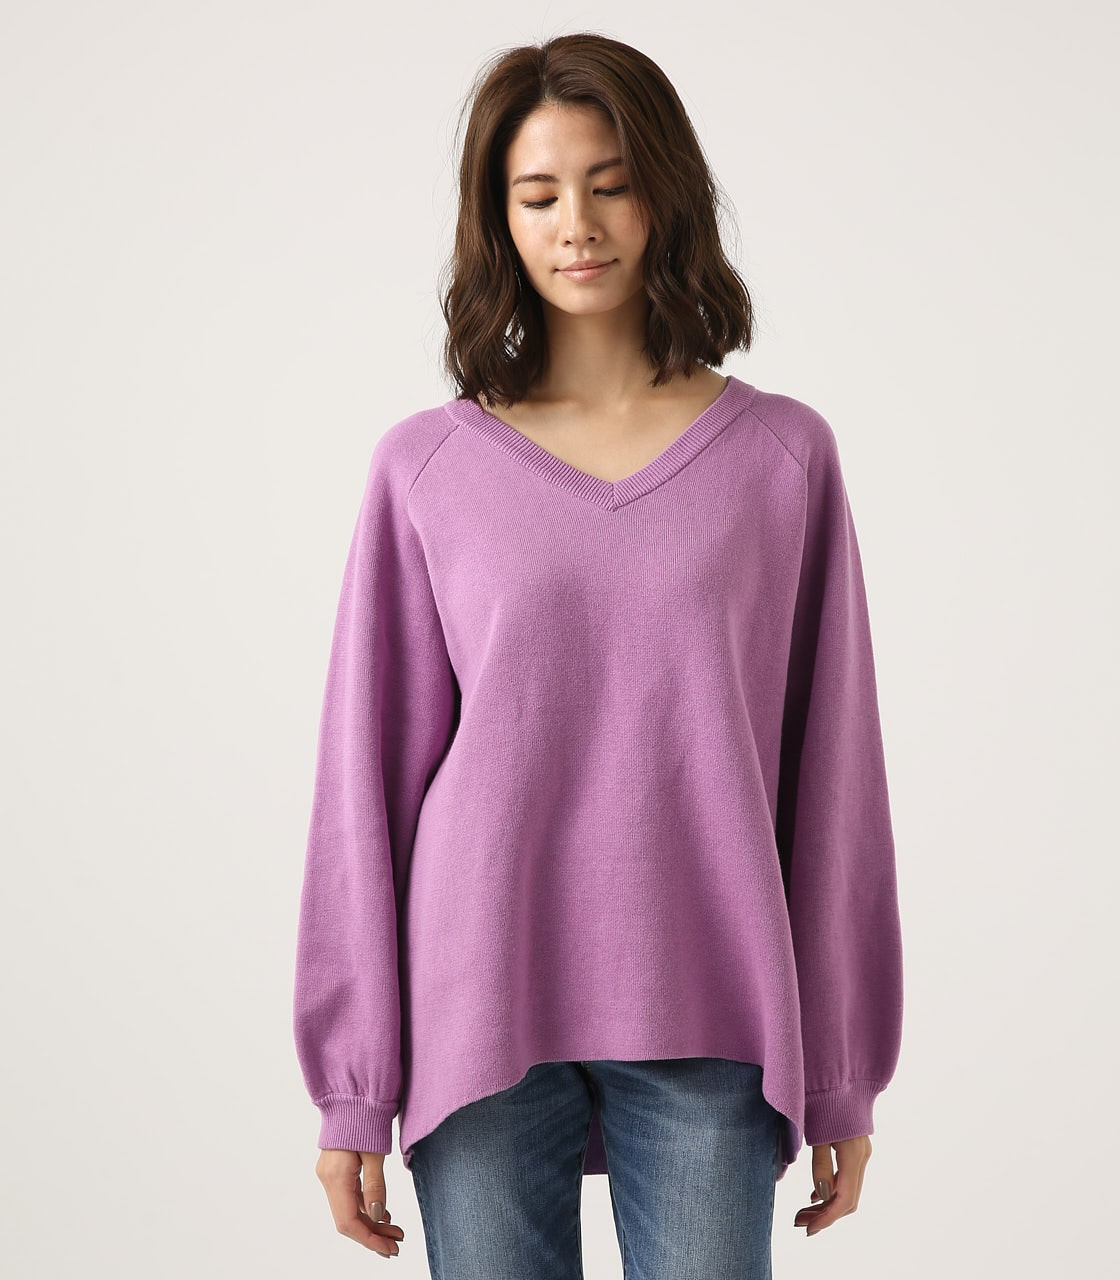 【AZUL BY MOUSSY】SWEATTER Vネック LOOSE TOPS 詳細画像 L/PUR 5